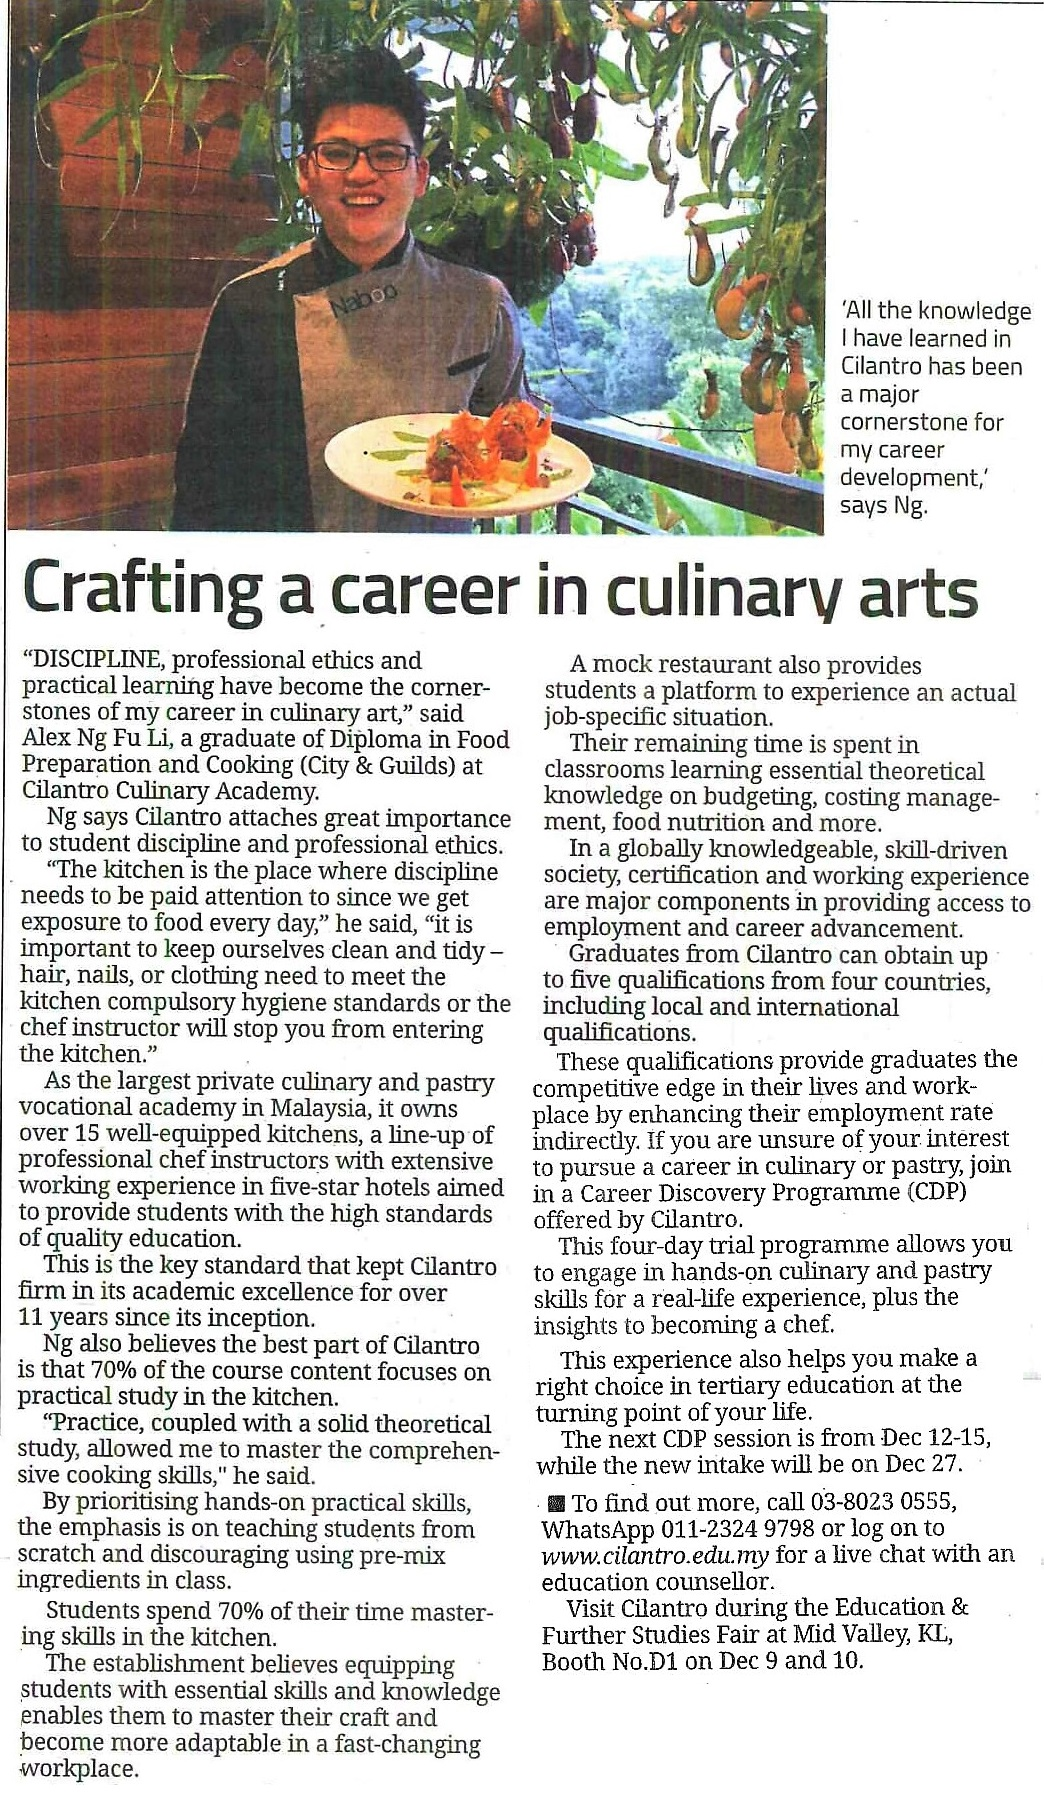 Crafting A Career in Culinary Arts